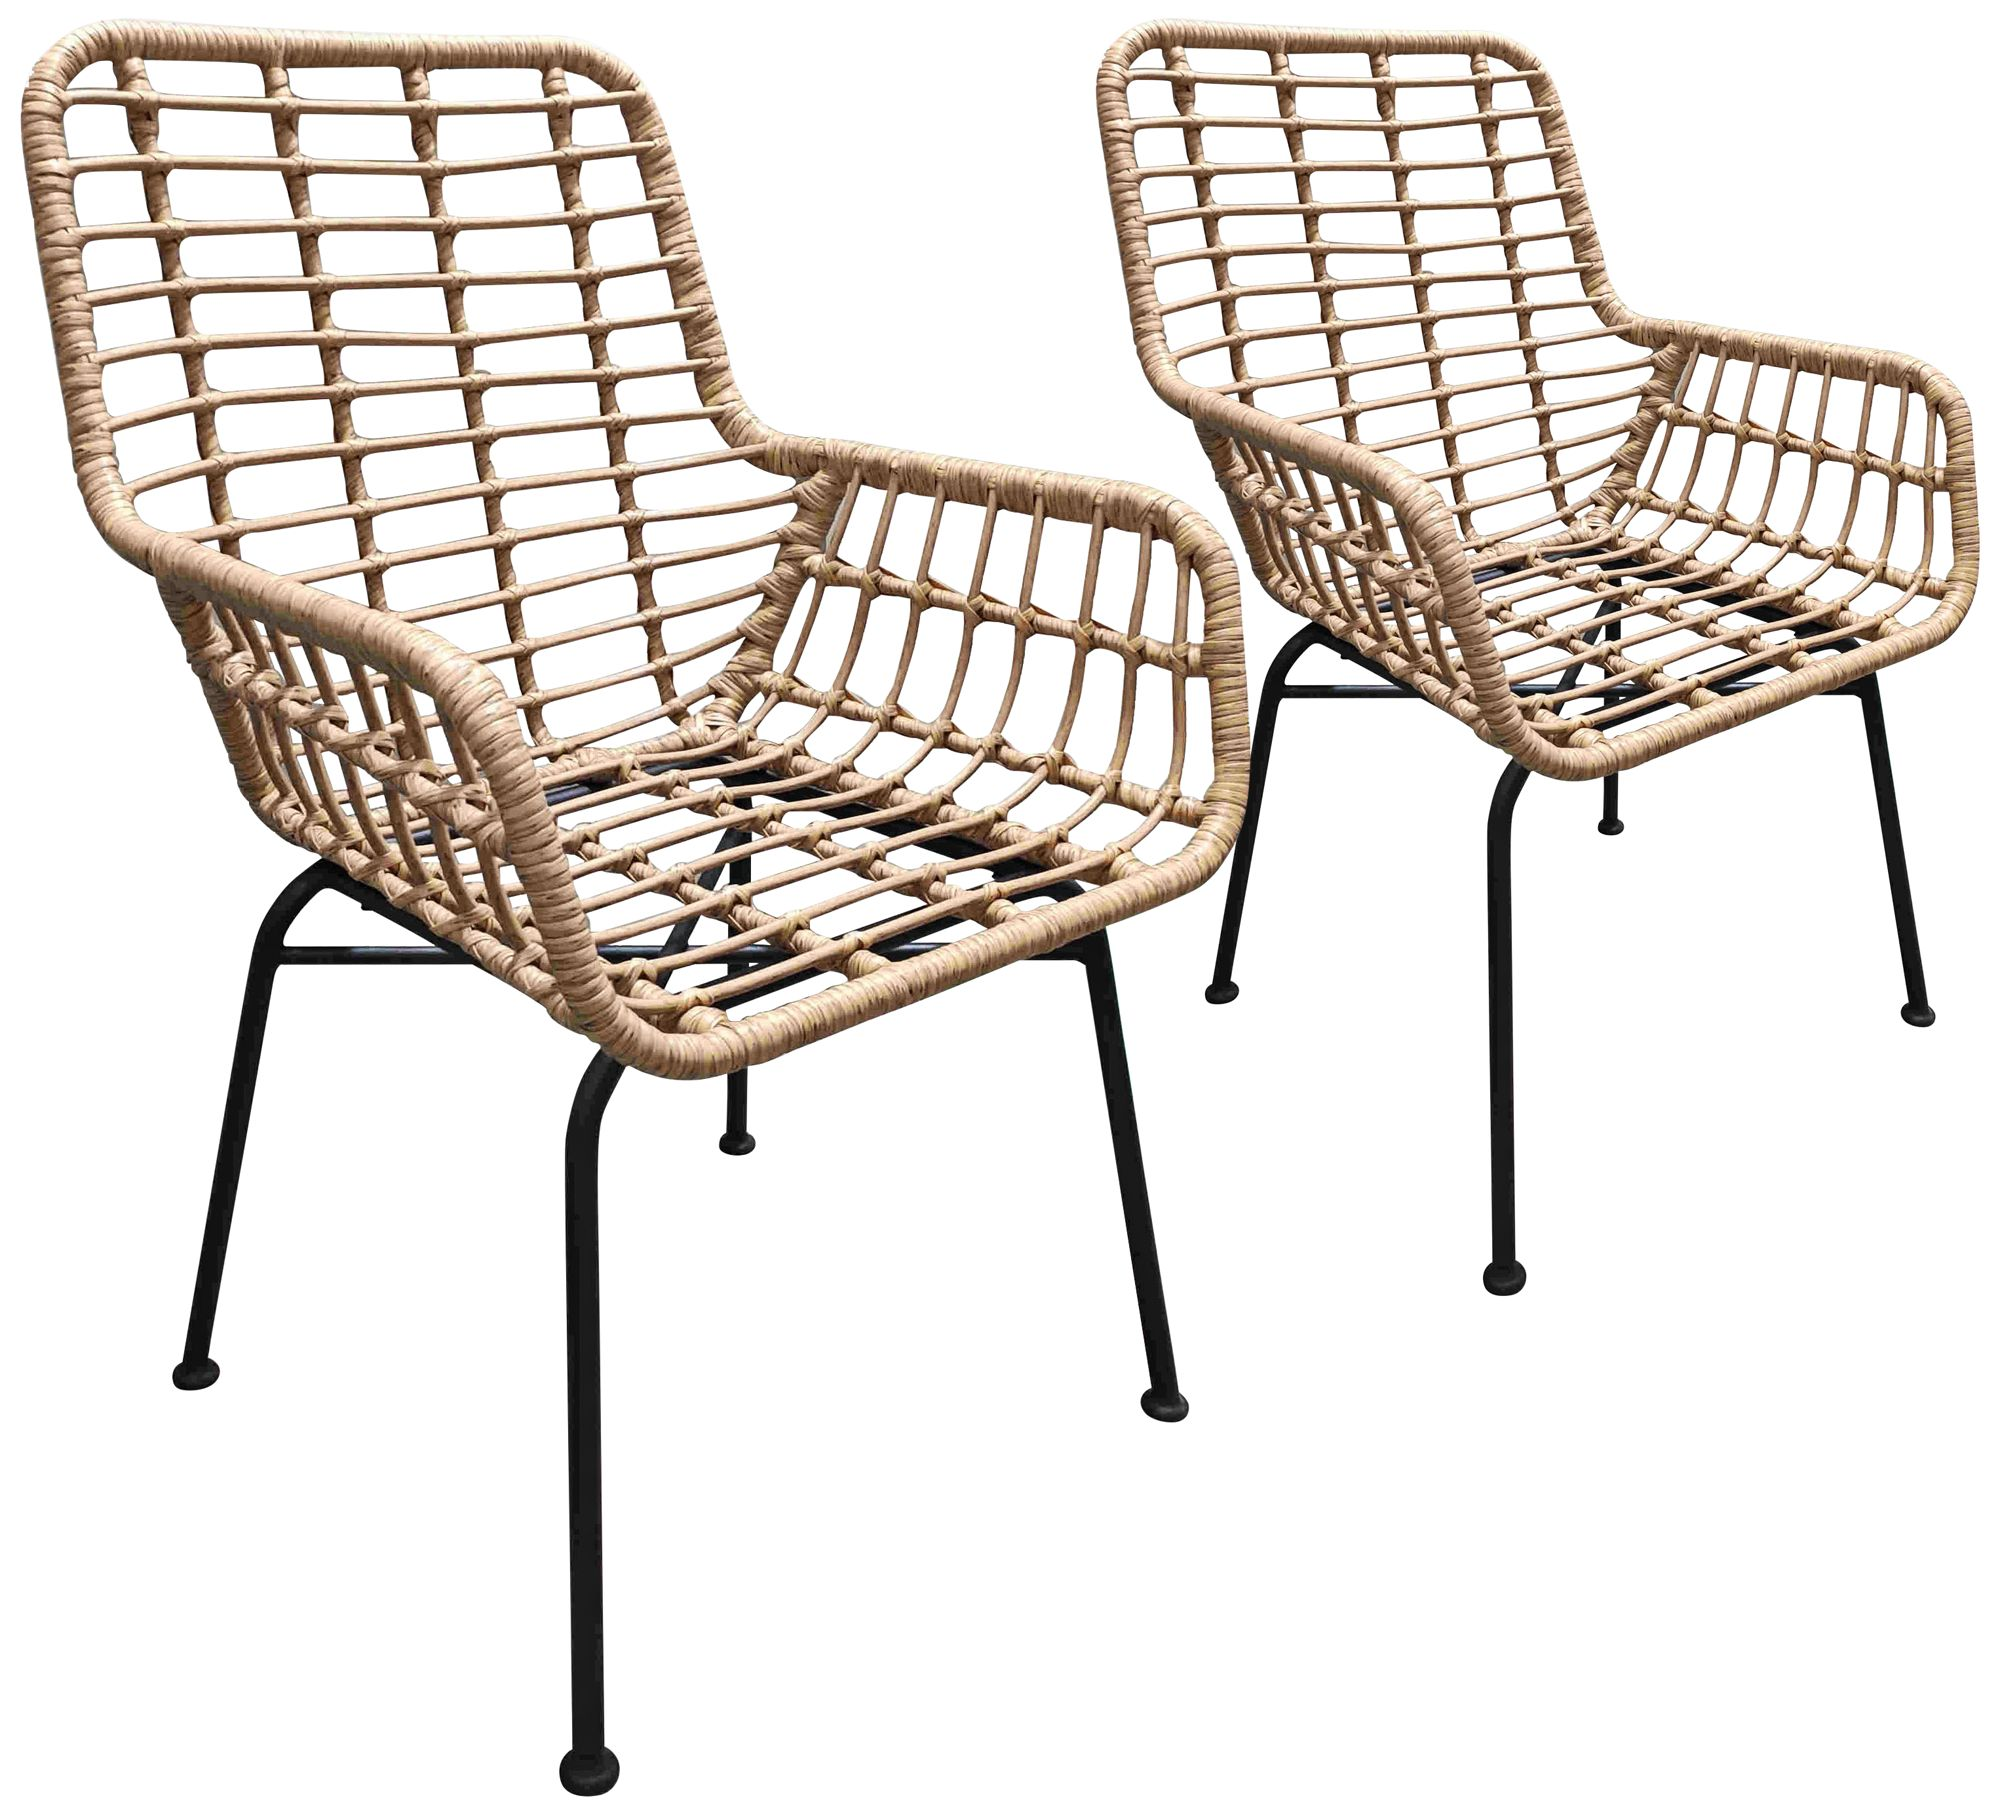 zuo lyon natural woven outdoor chairs set of 2